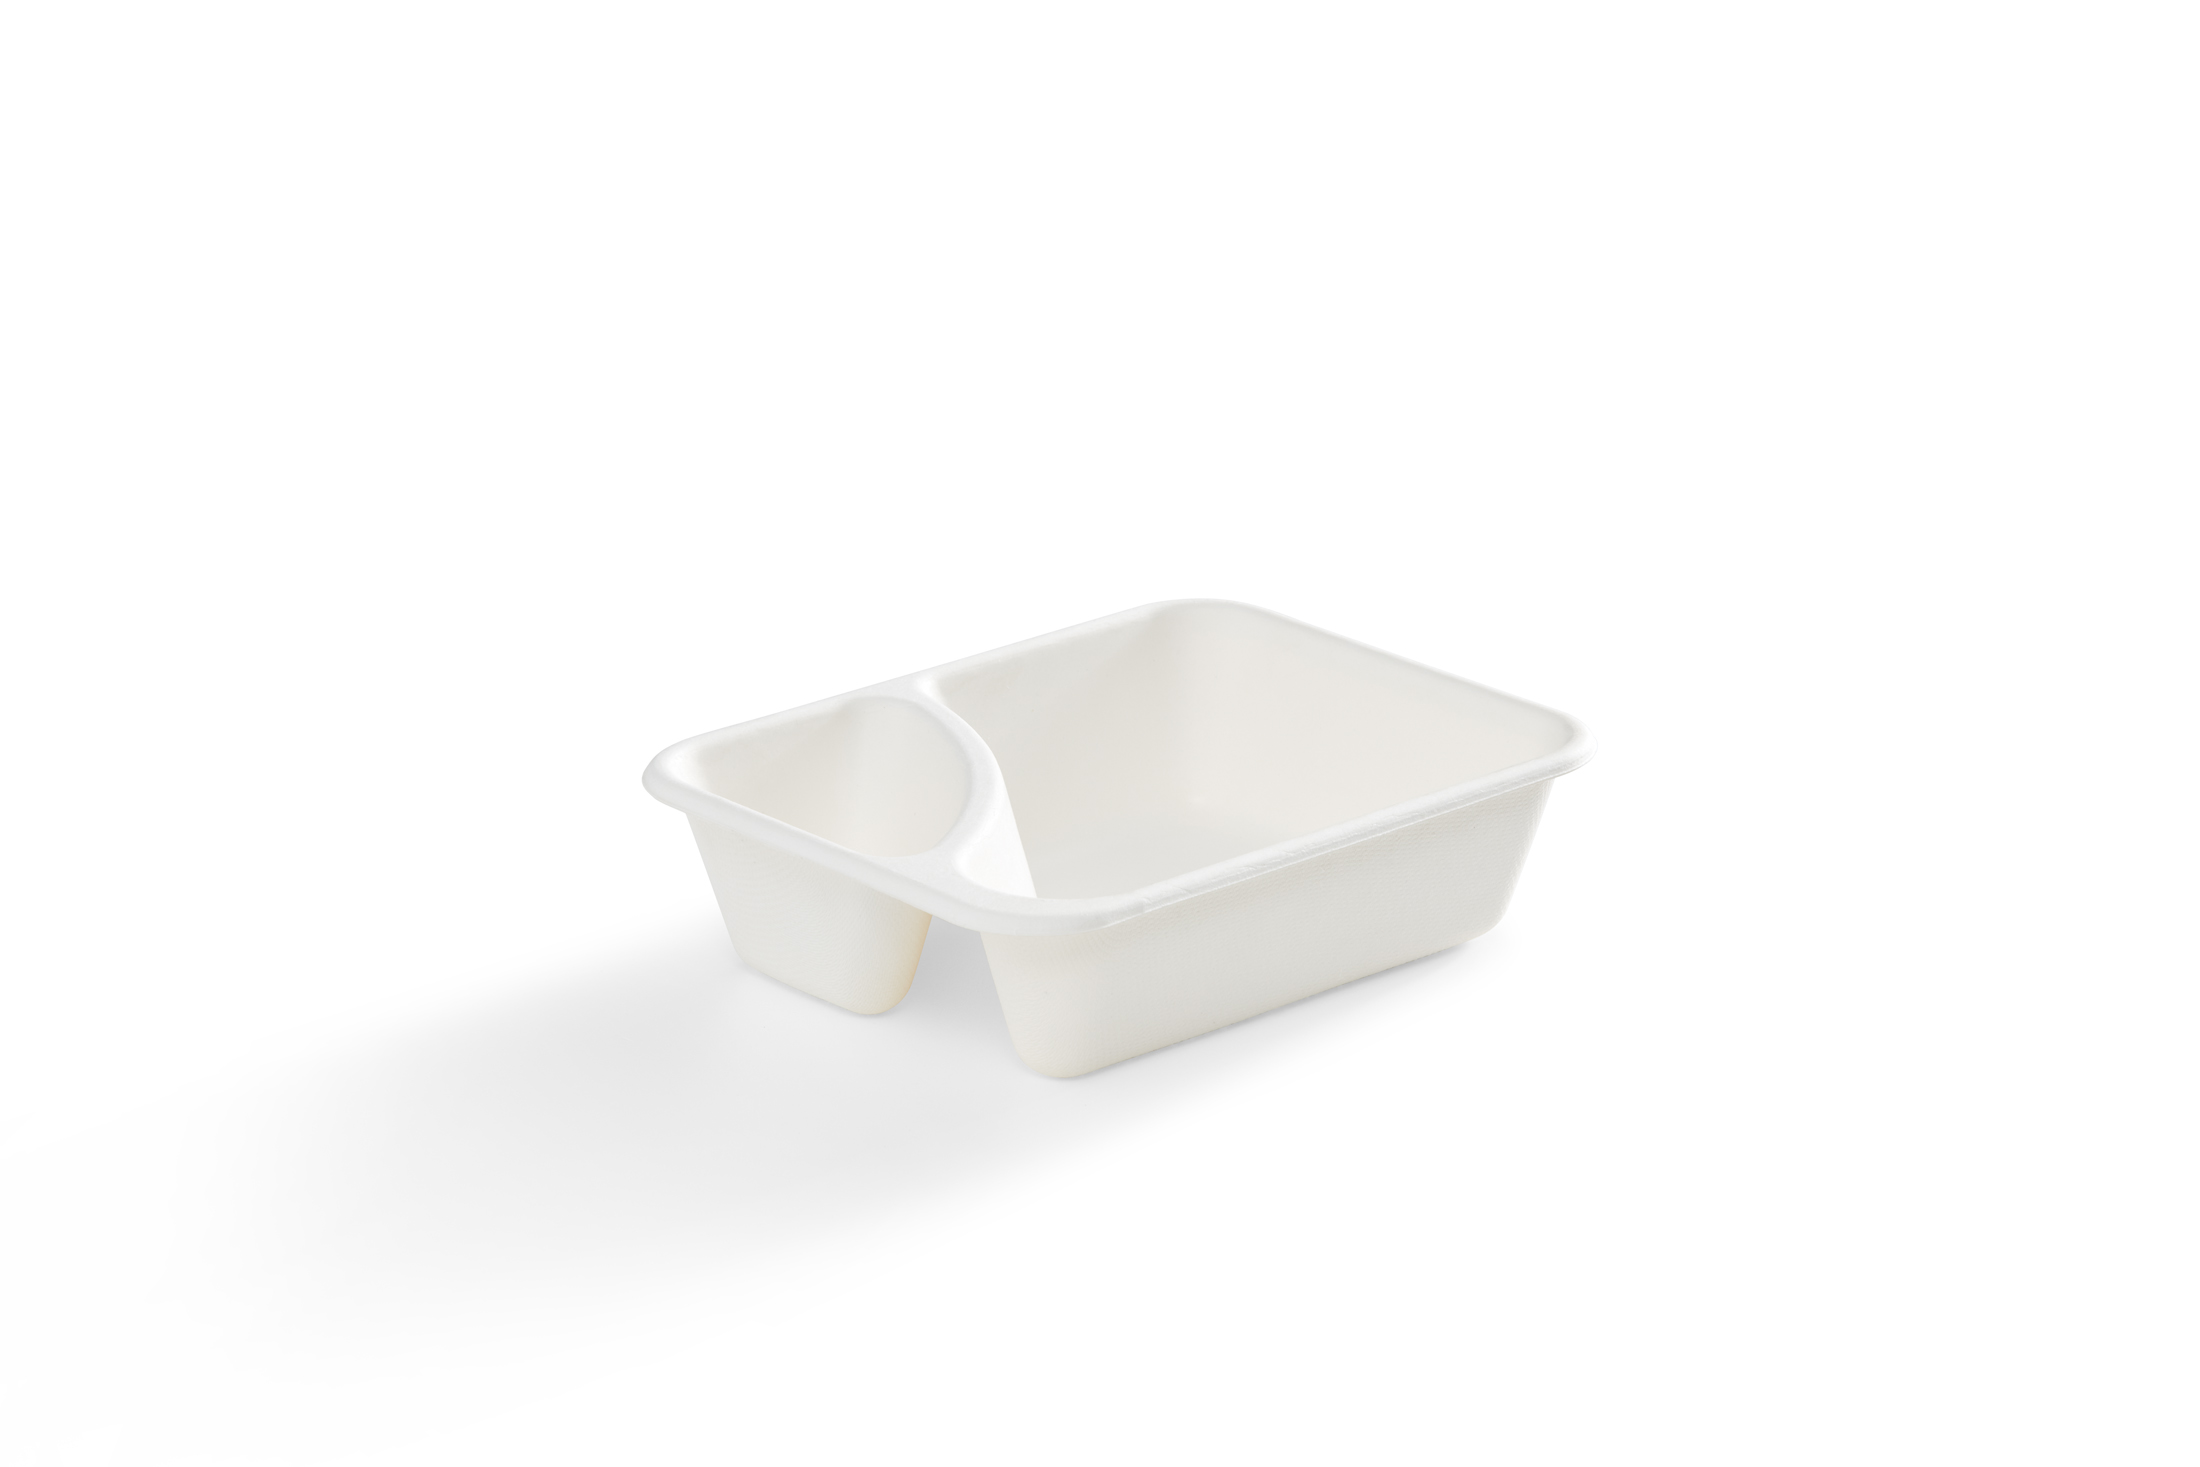 EG-NT-01-W 2-Compartment Tray Bagasse